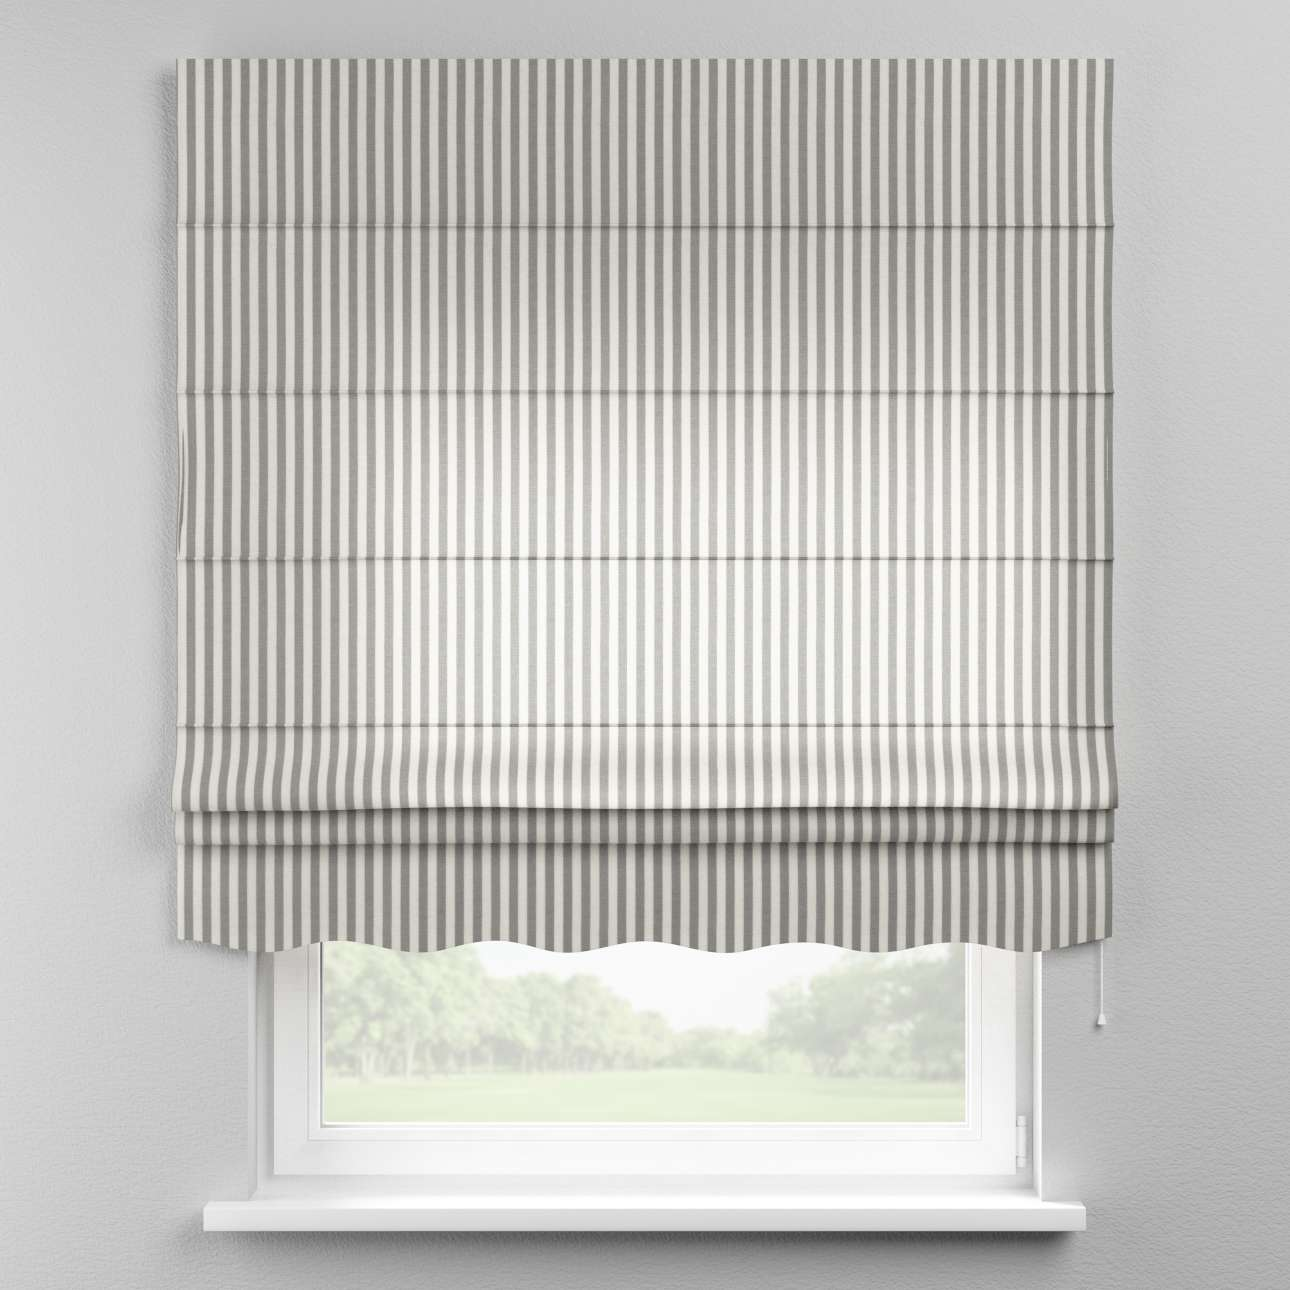 Florence roman blind  80 x 170 cm (31.5 x 67 inch) in collection Quadro, fabric: 136-12